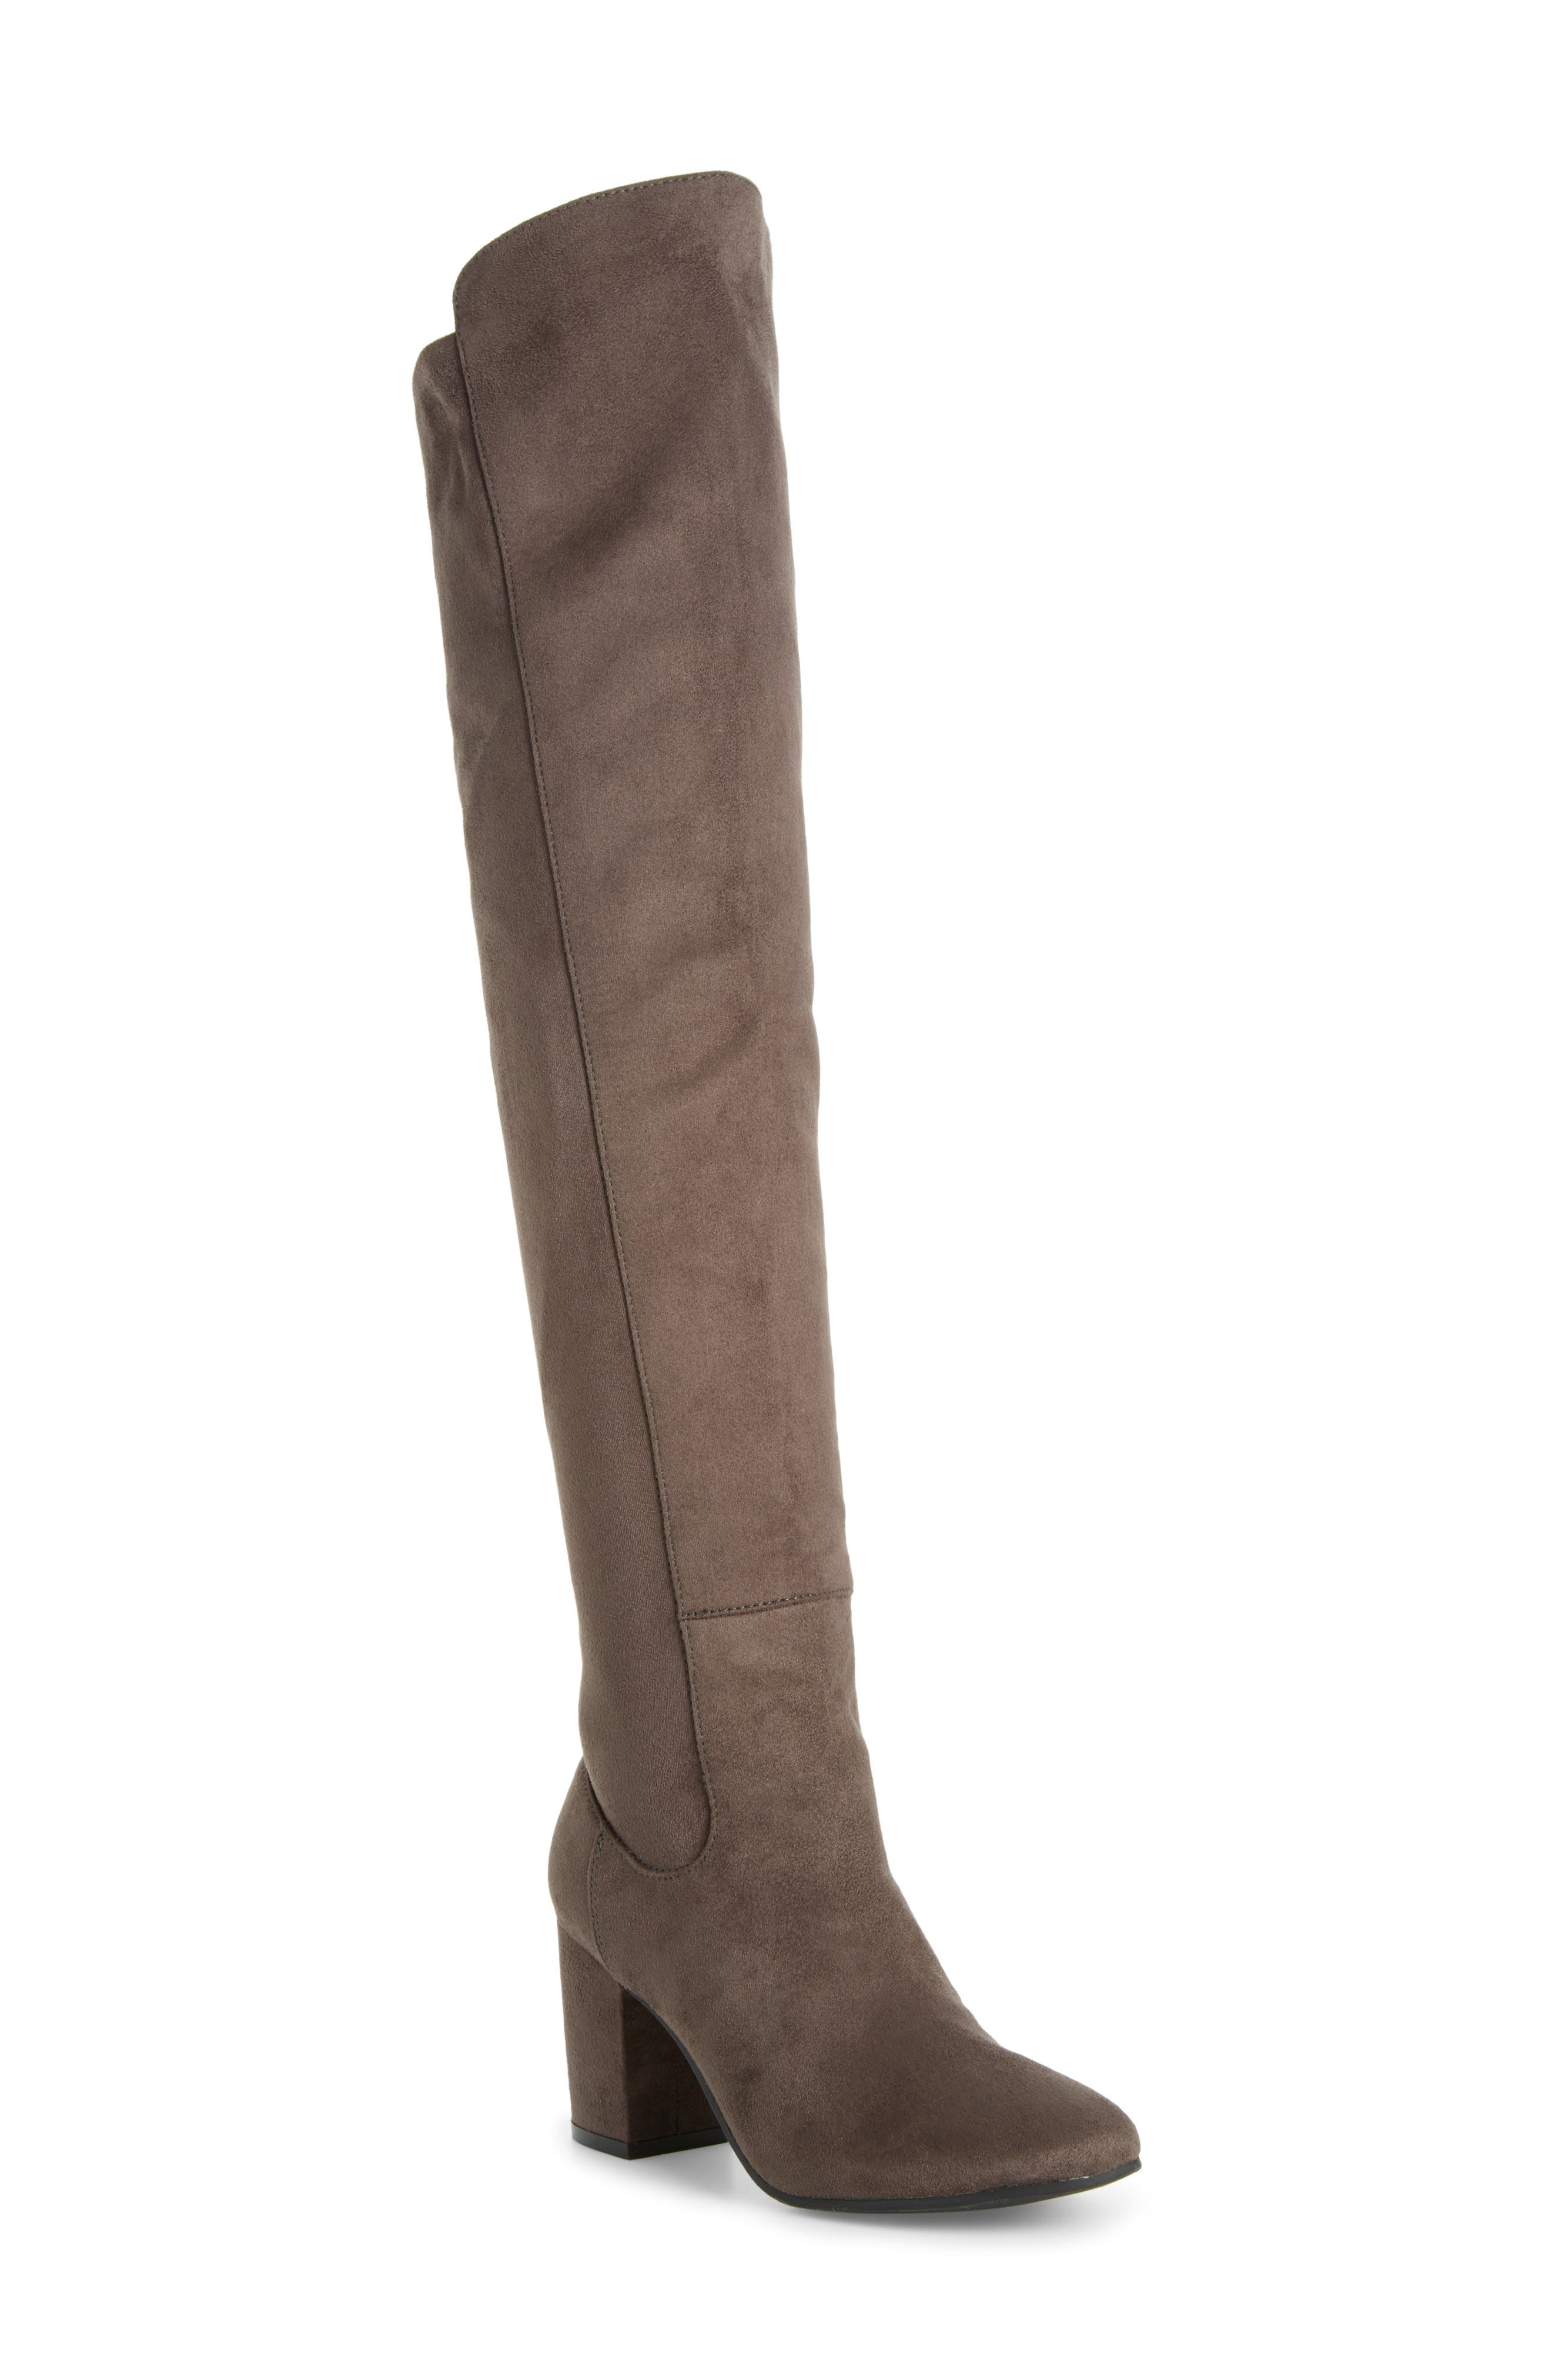 Lynx Stretch Over the Knee Boot,                         Main,                         color, Charcoal Faux Suede